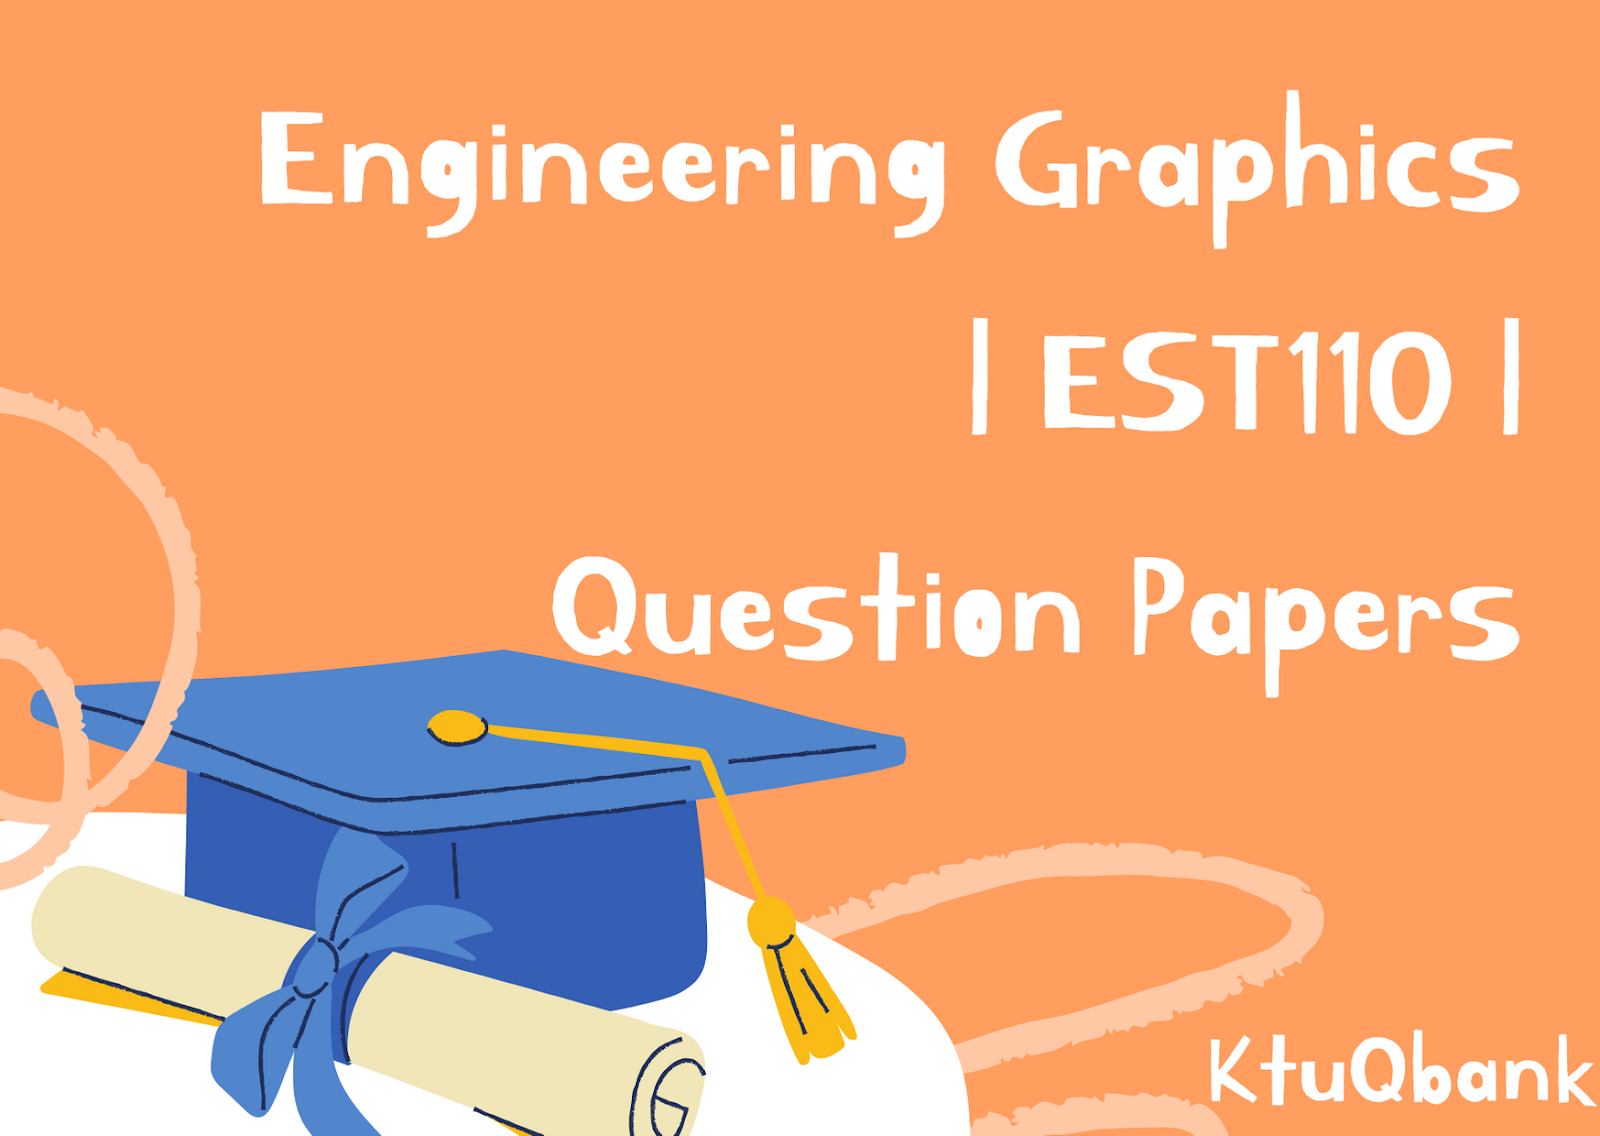 Engineering Graphics | EST110 | Question Papers